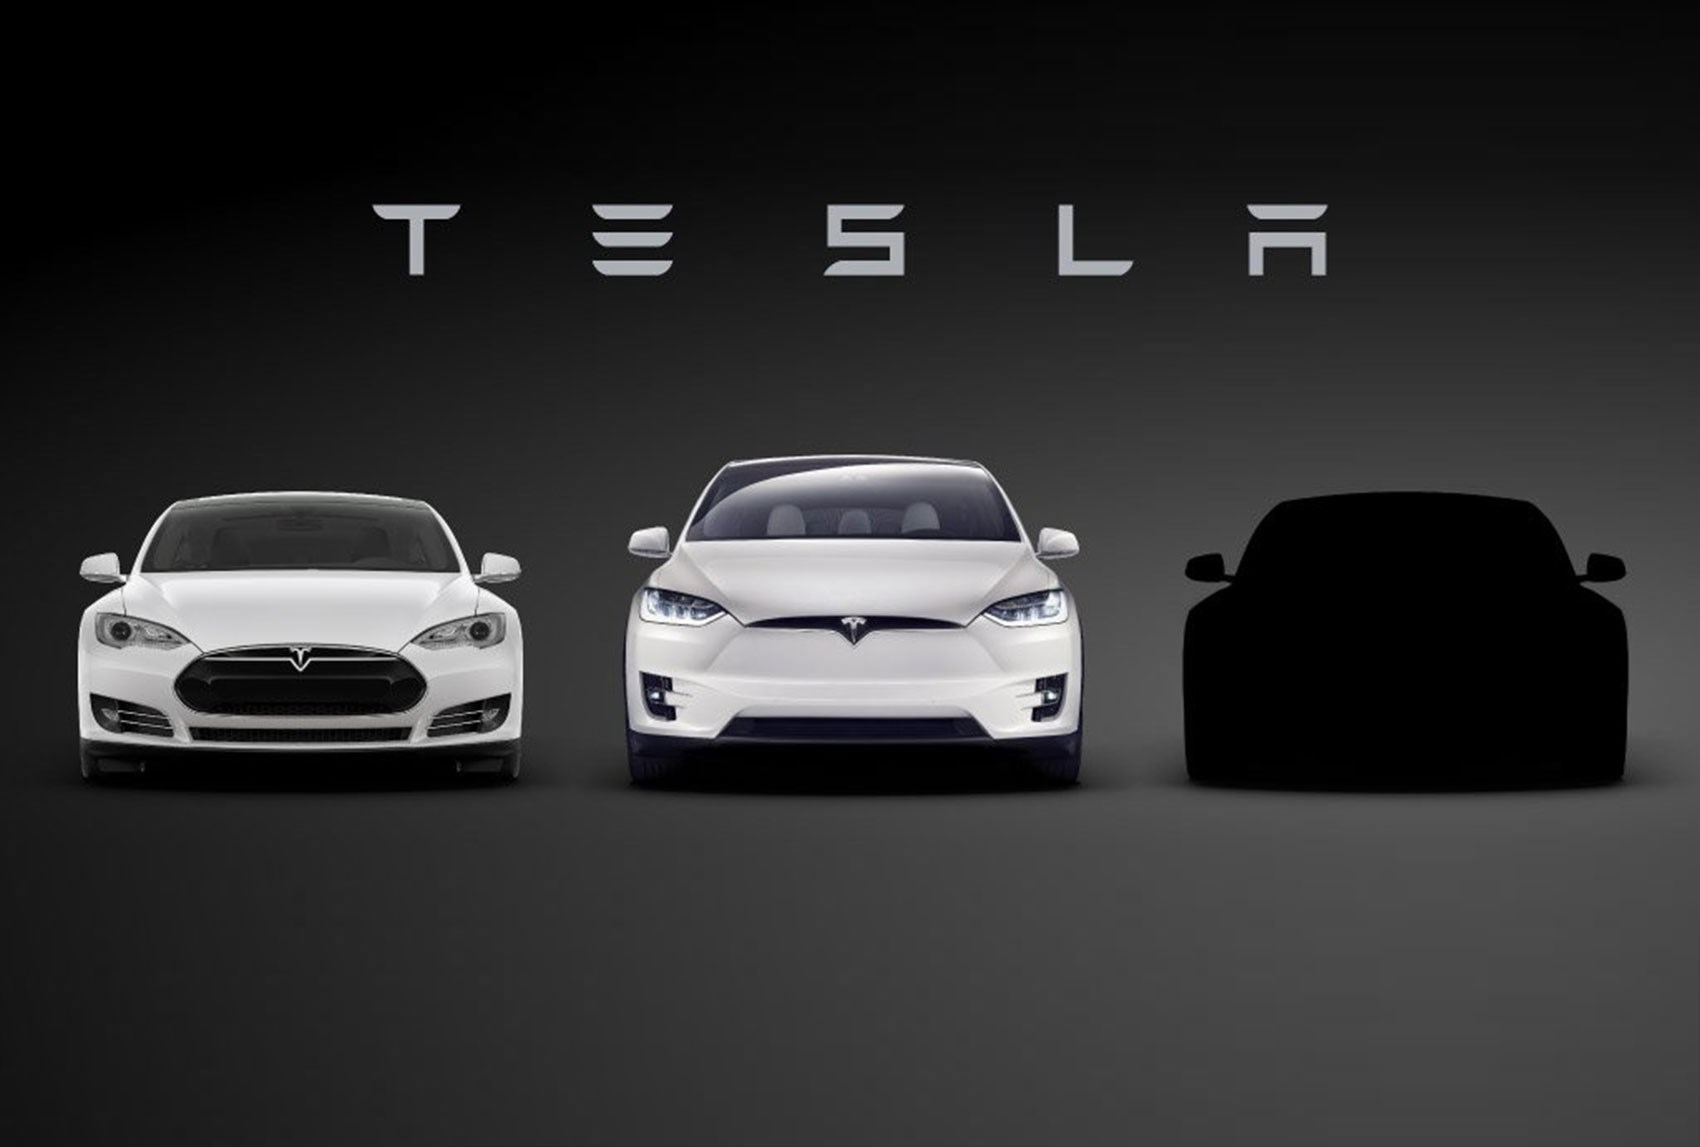 new tesla car release dateTesla Model 3 news the most affordable Tesla yet in pictures by